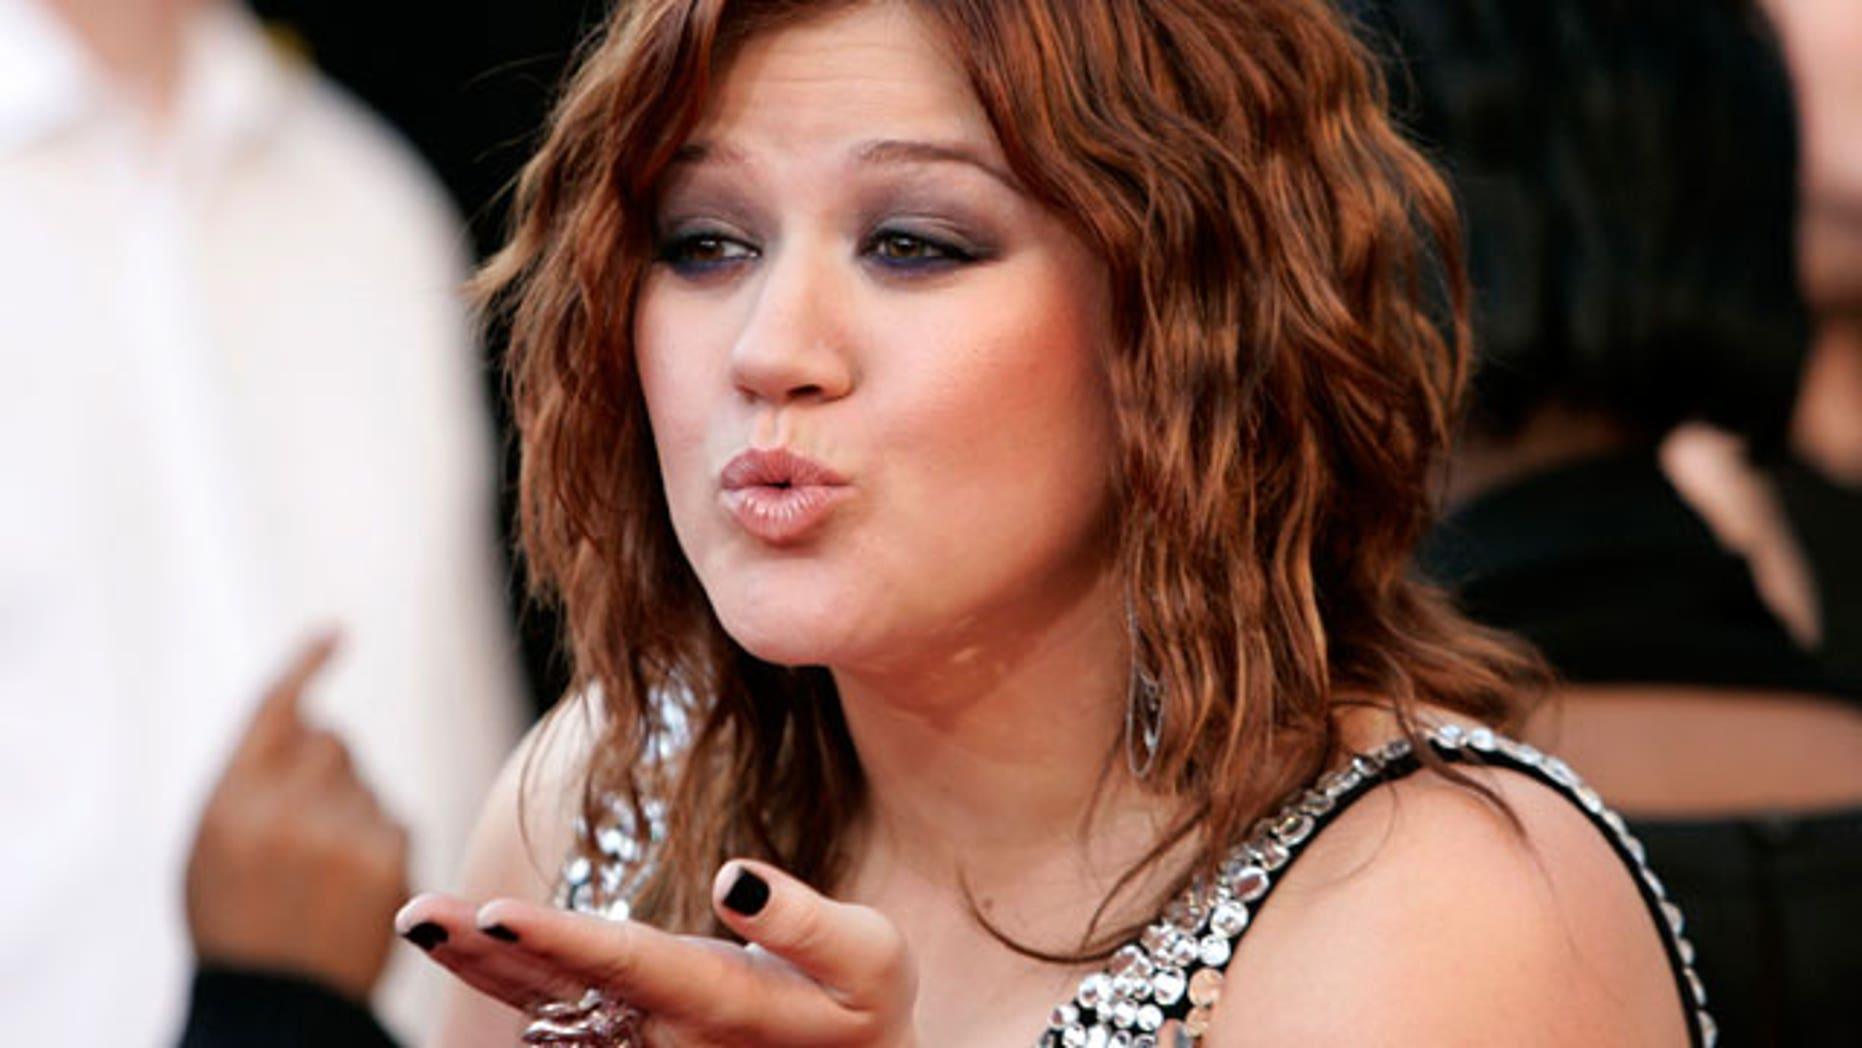 Kelly Clarkson Loses Some Fans With Ron Paul Endorsement